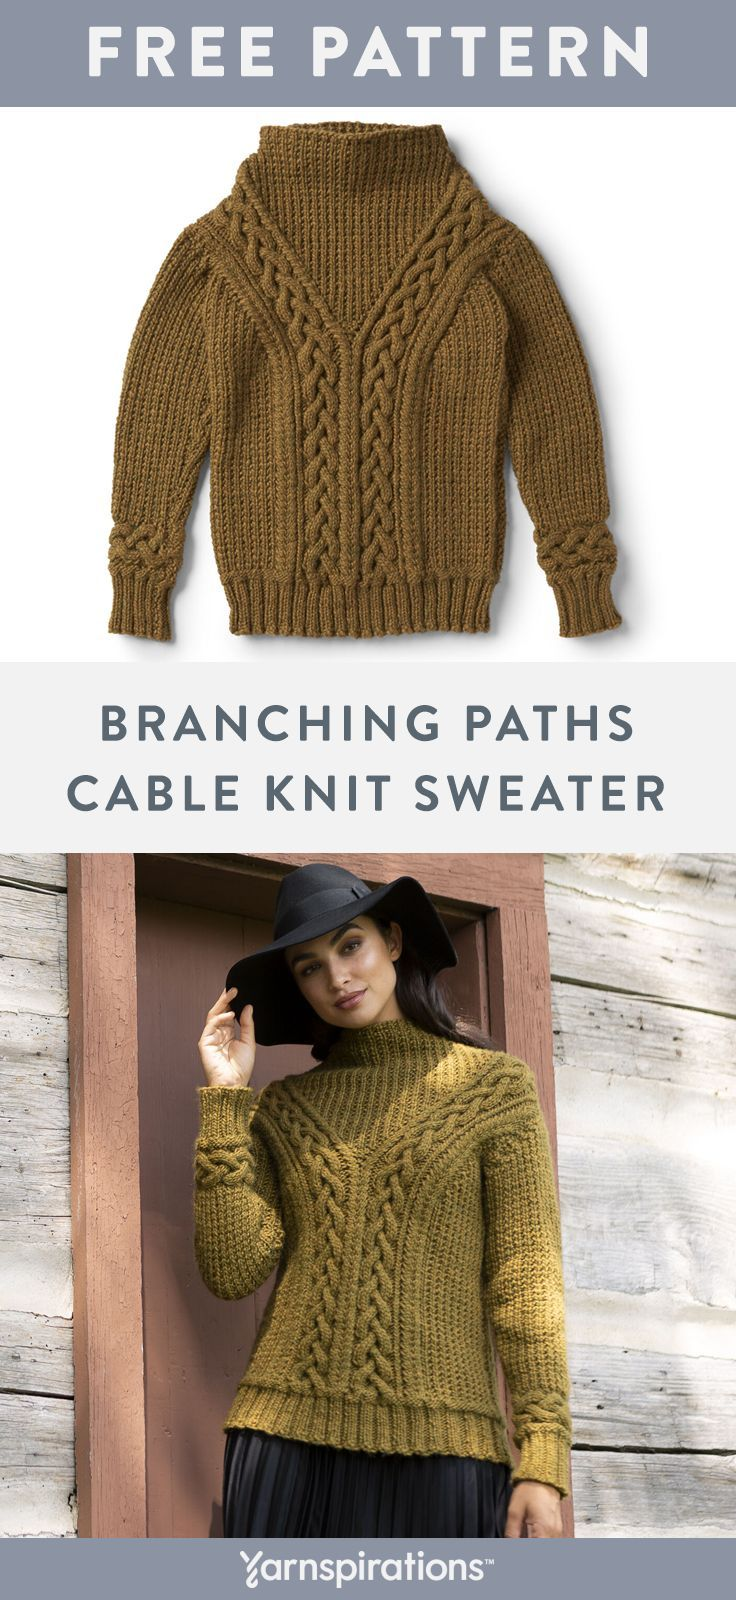 Free knit pattern in Patons Alpaca Blend yarn. Free ...